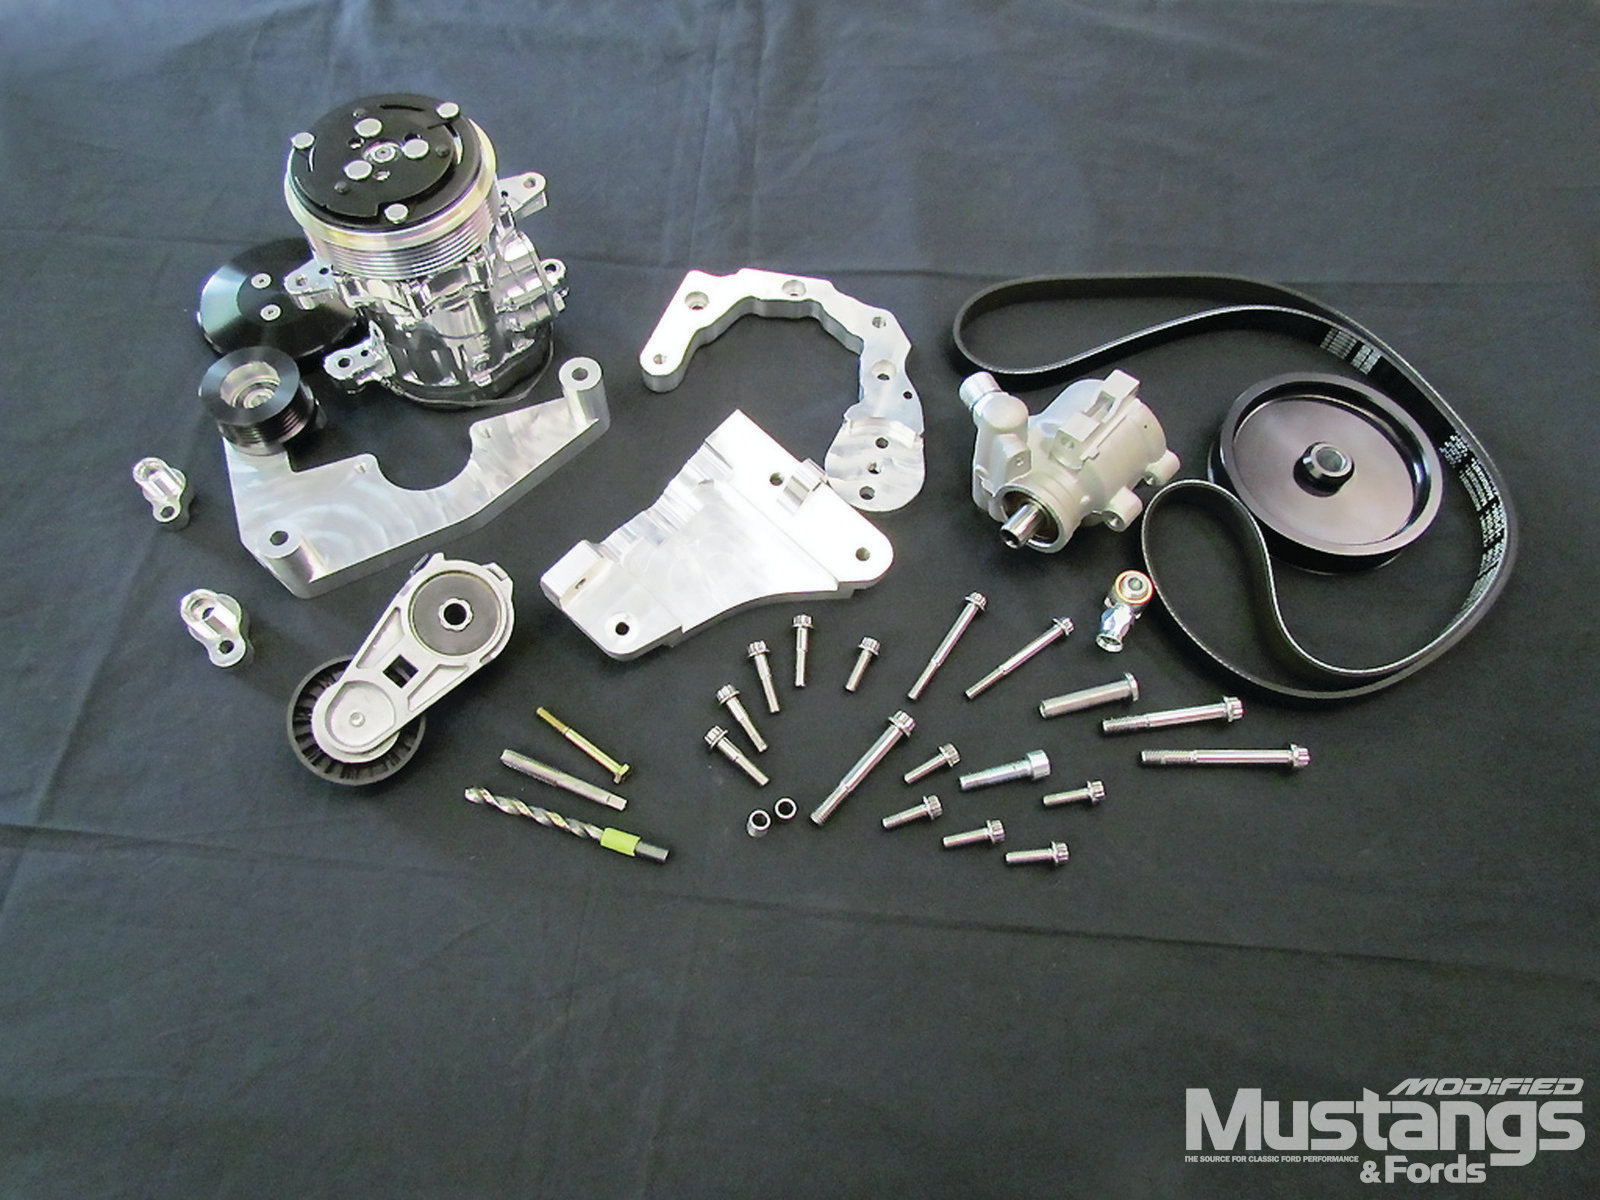 Mdmp 1208 02 Power Steering Upgrade Turn Easy